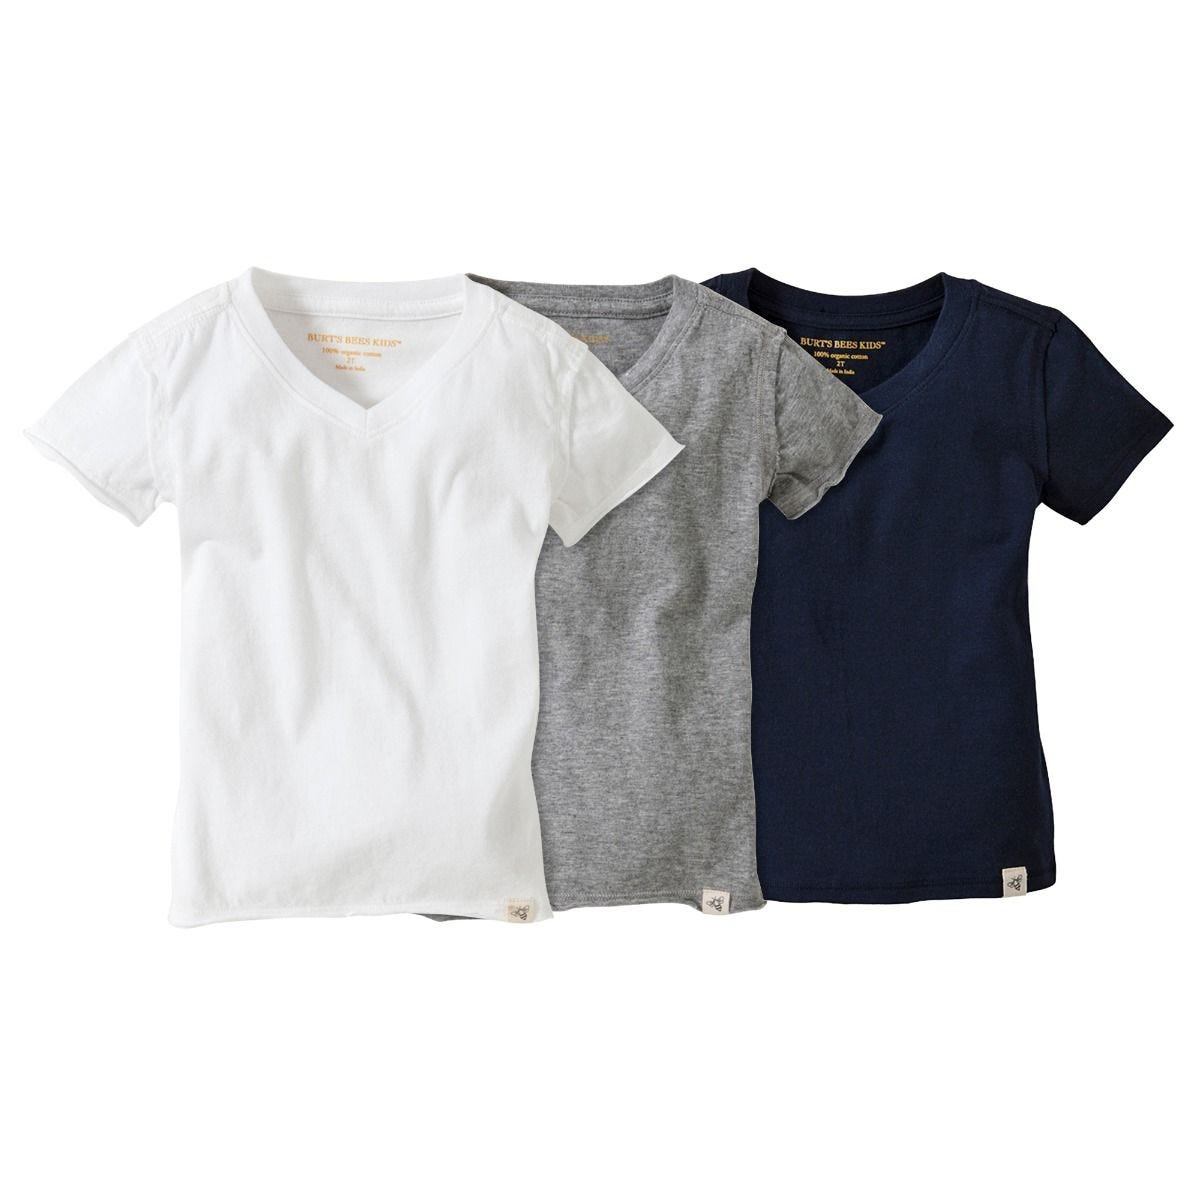 25e7b9ee123 V-Neck Organic Baby Tees Set of 3